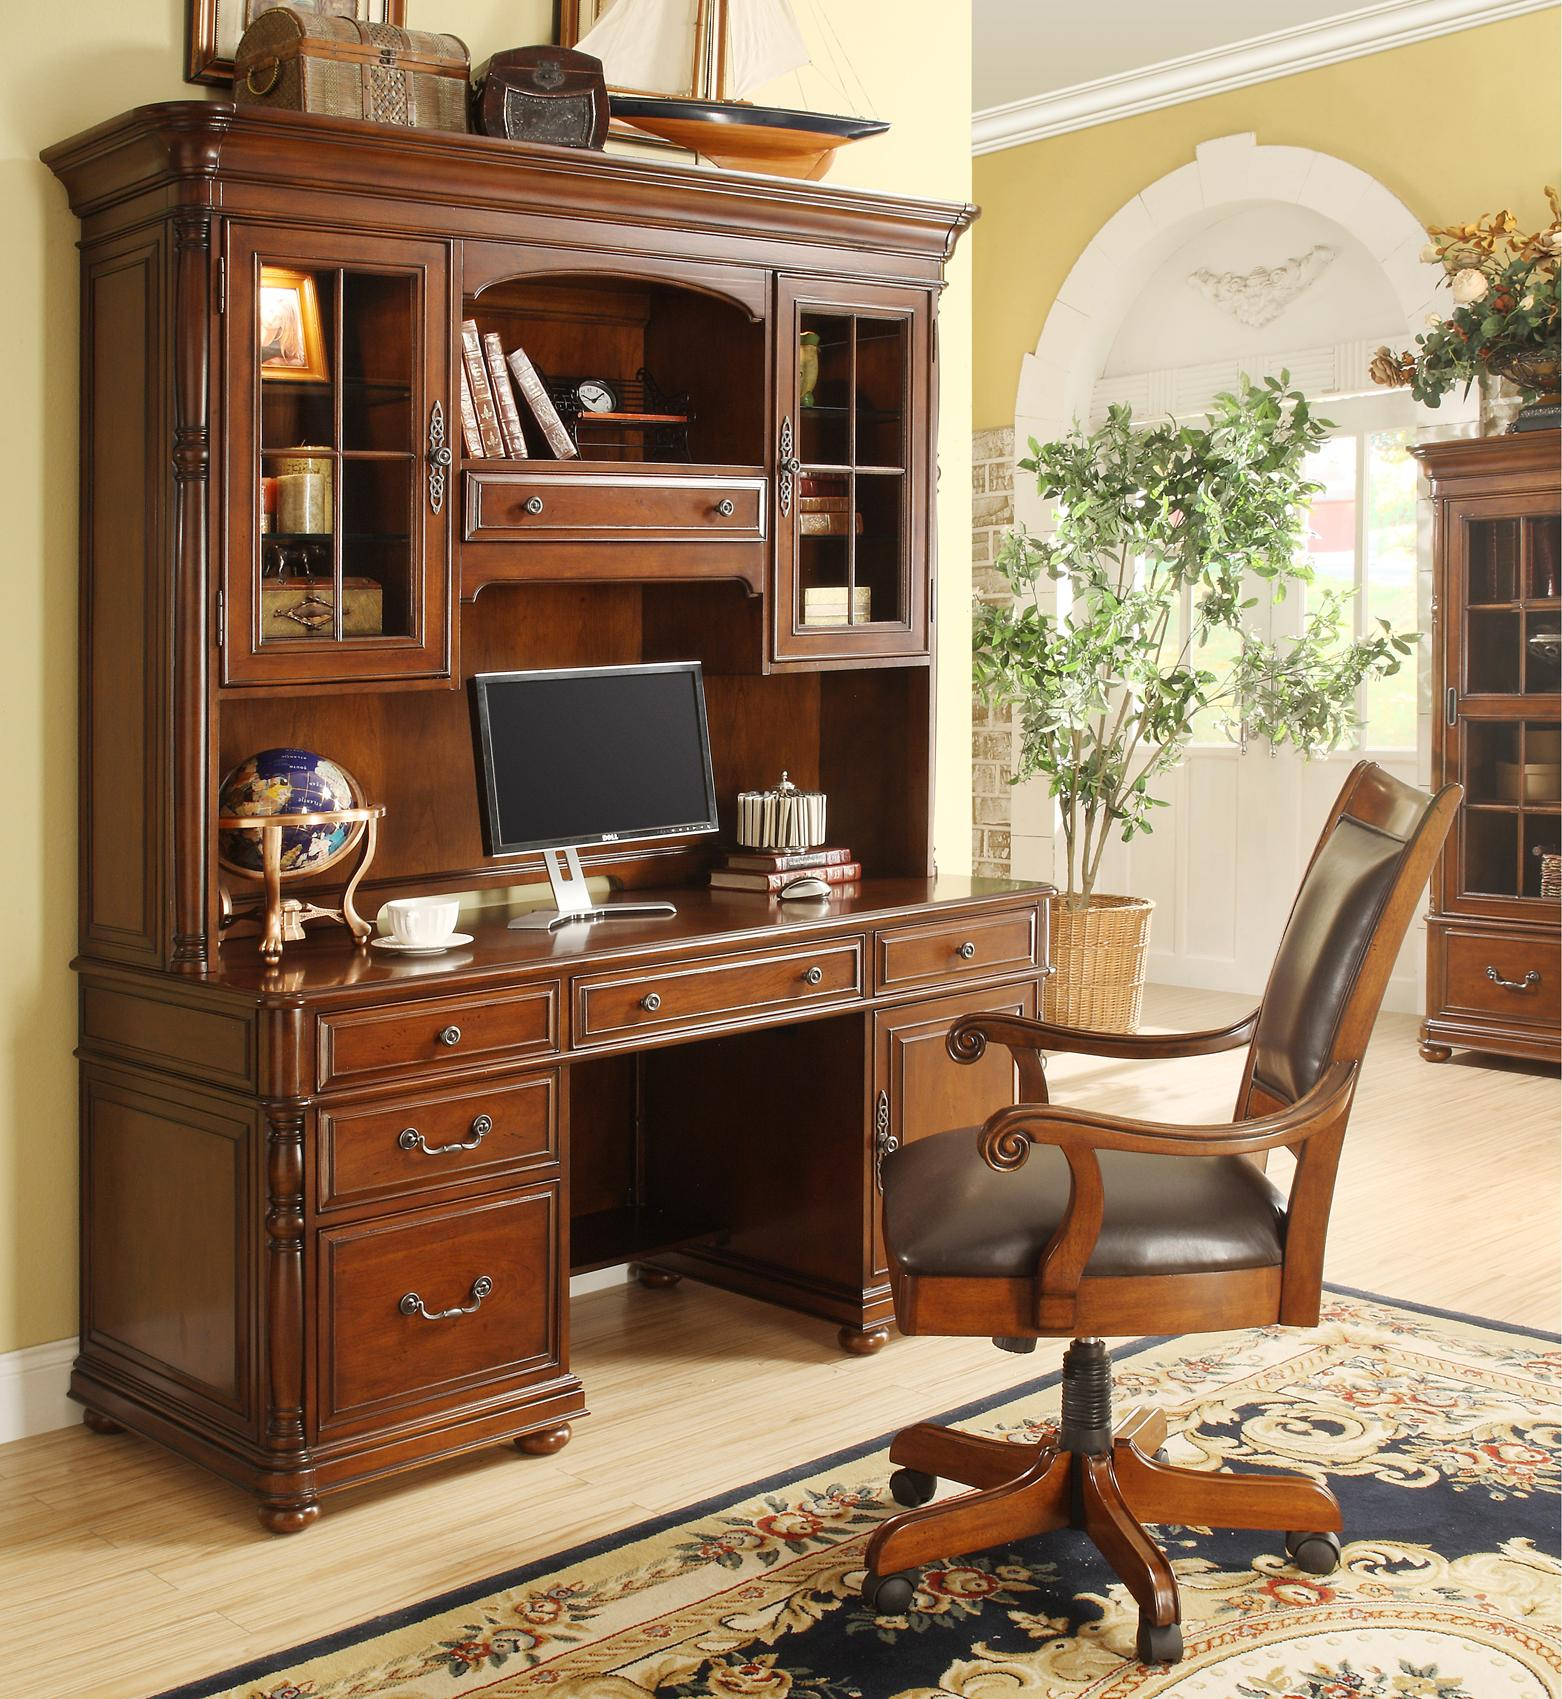 caster equipped wooden desk chair with leather covered seat by riverside furniture wolf and. Black Bedroom Furniture Sets. Home Design Ideas